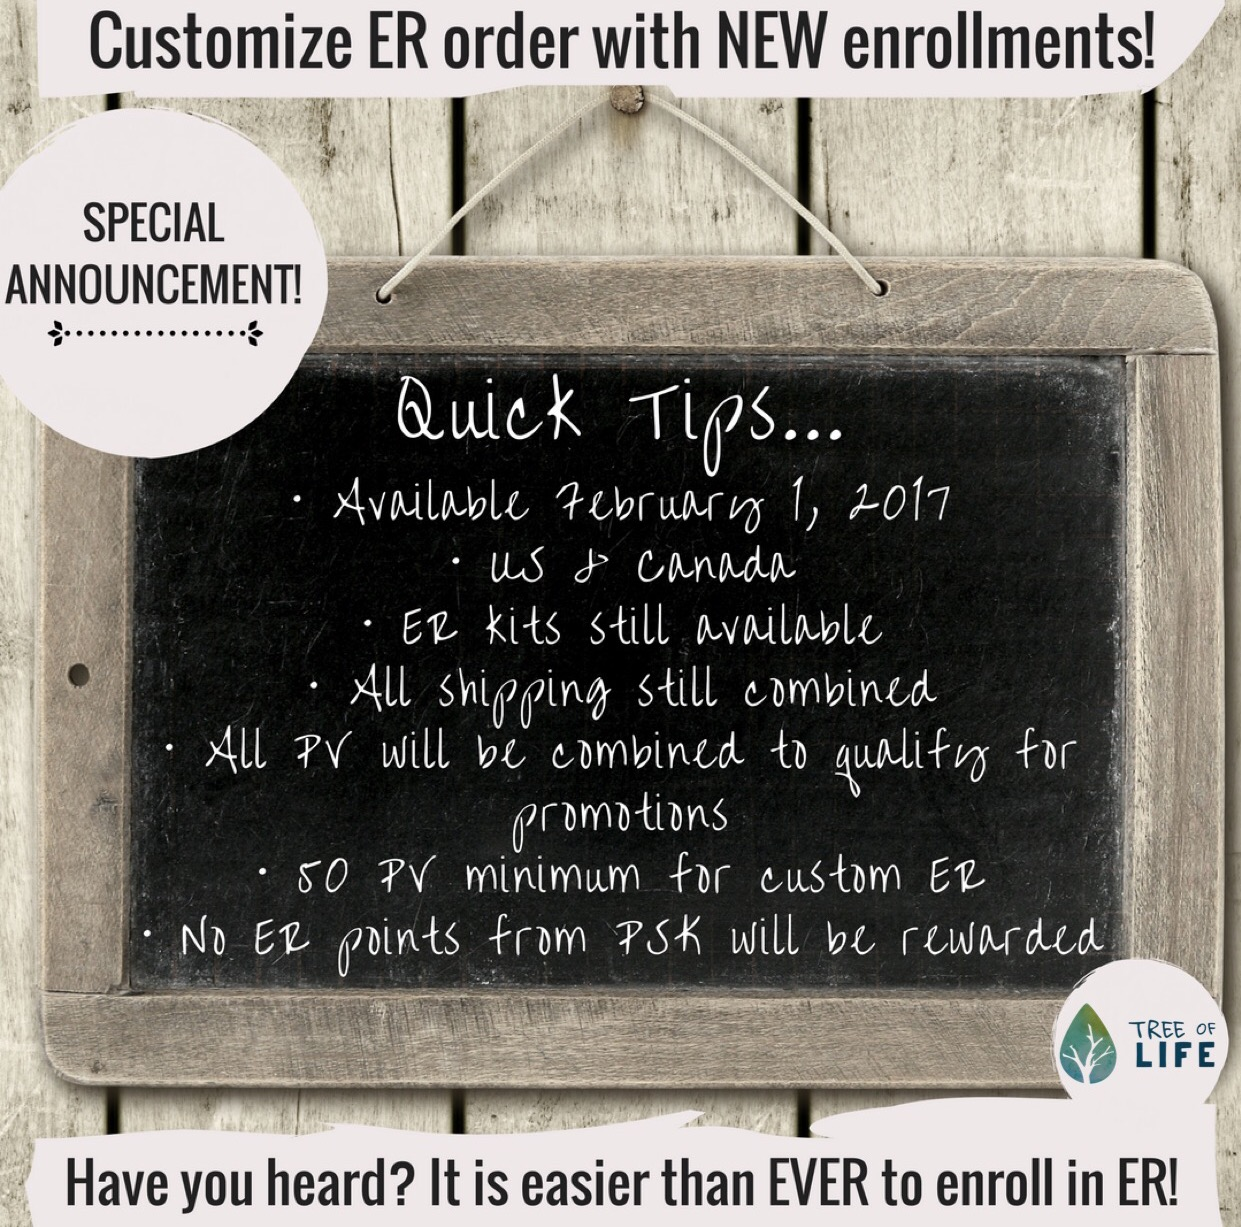 Awesome Update: New Members can order their Premium Starter Kit AND enroll in ER with a custom order. AND earn points toward that month's promo. AND save on shipping. Hello, streamlined process.